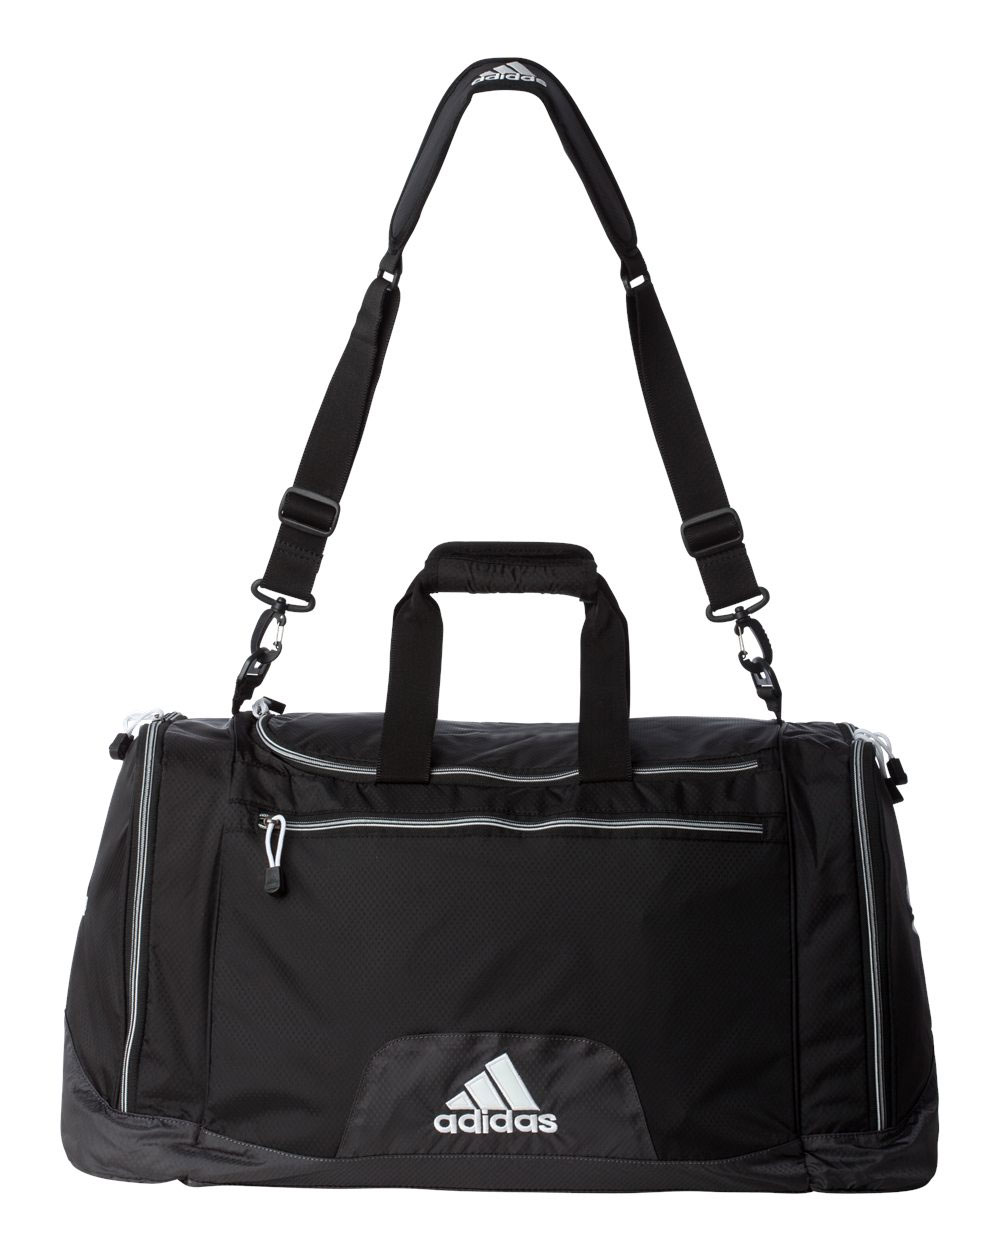 Adidas University Medium Duffle